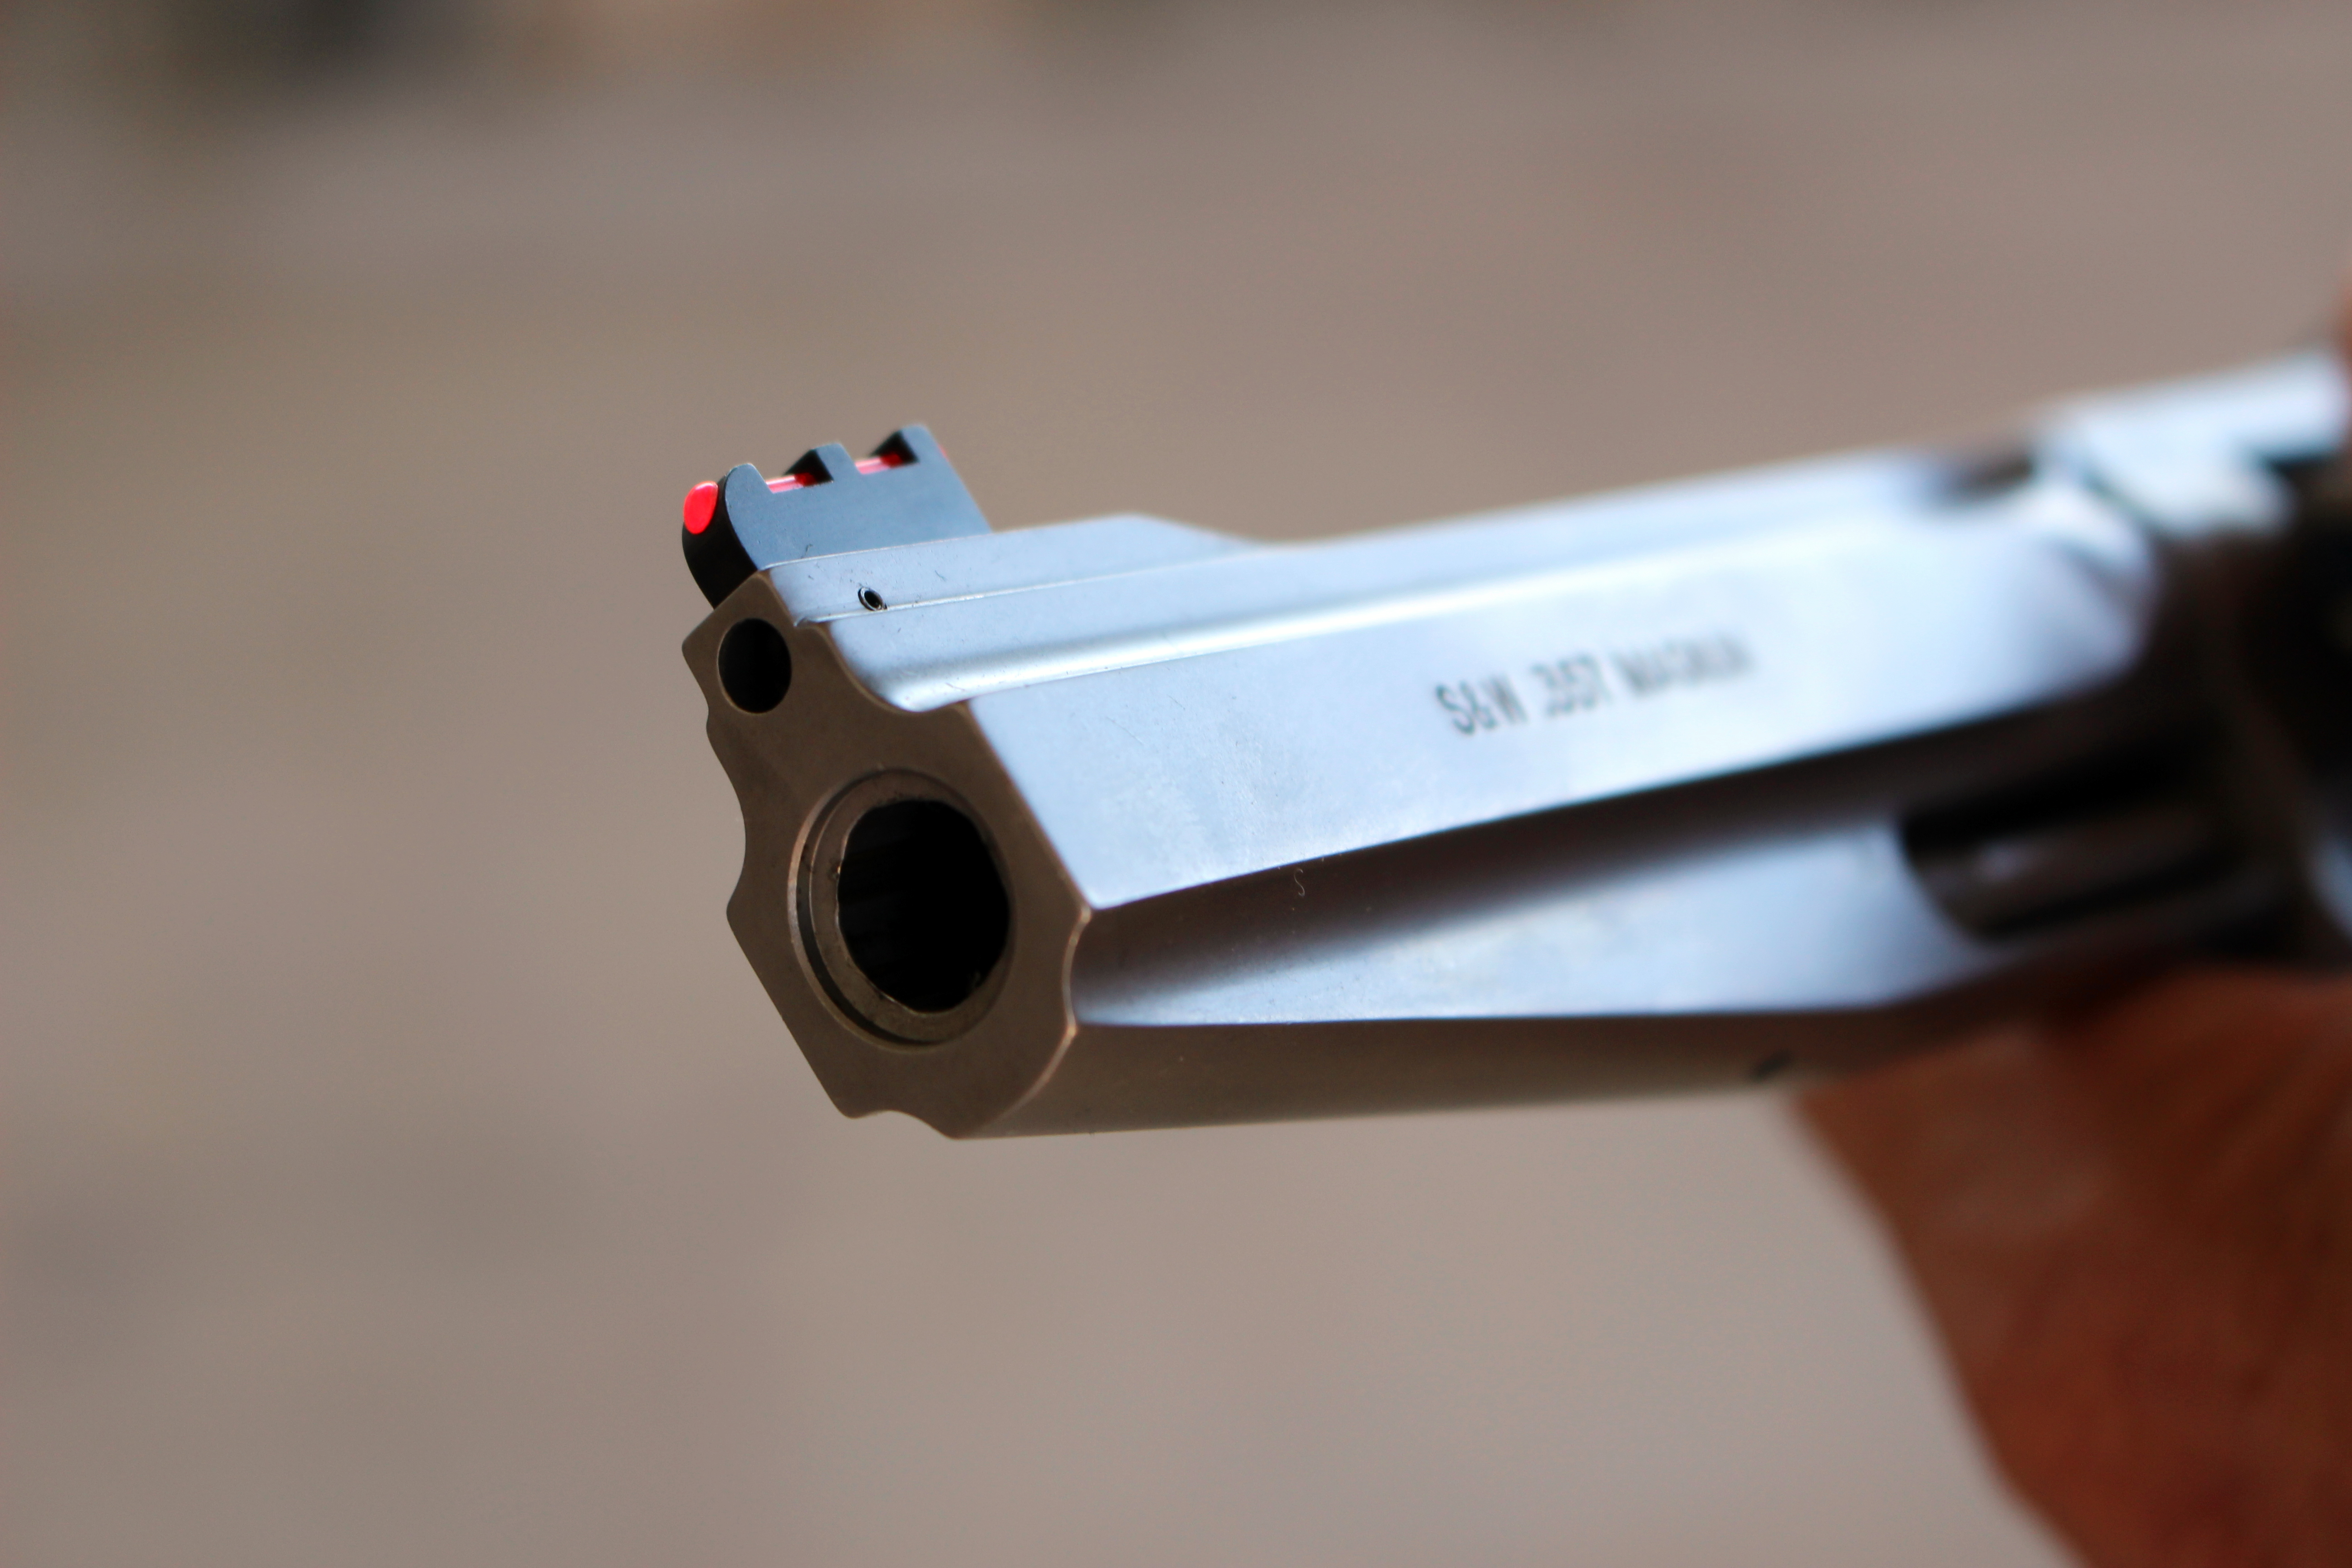 Replacing front sights on S&W revolvers (Can I install a new